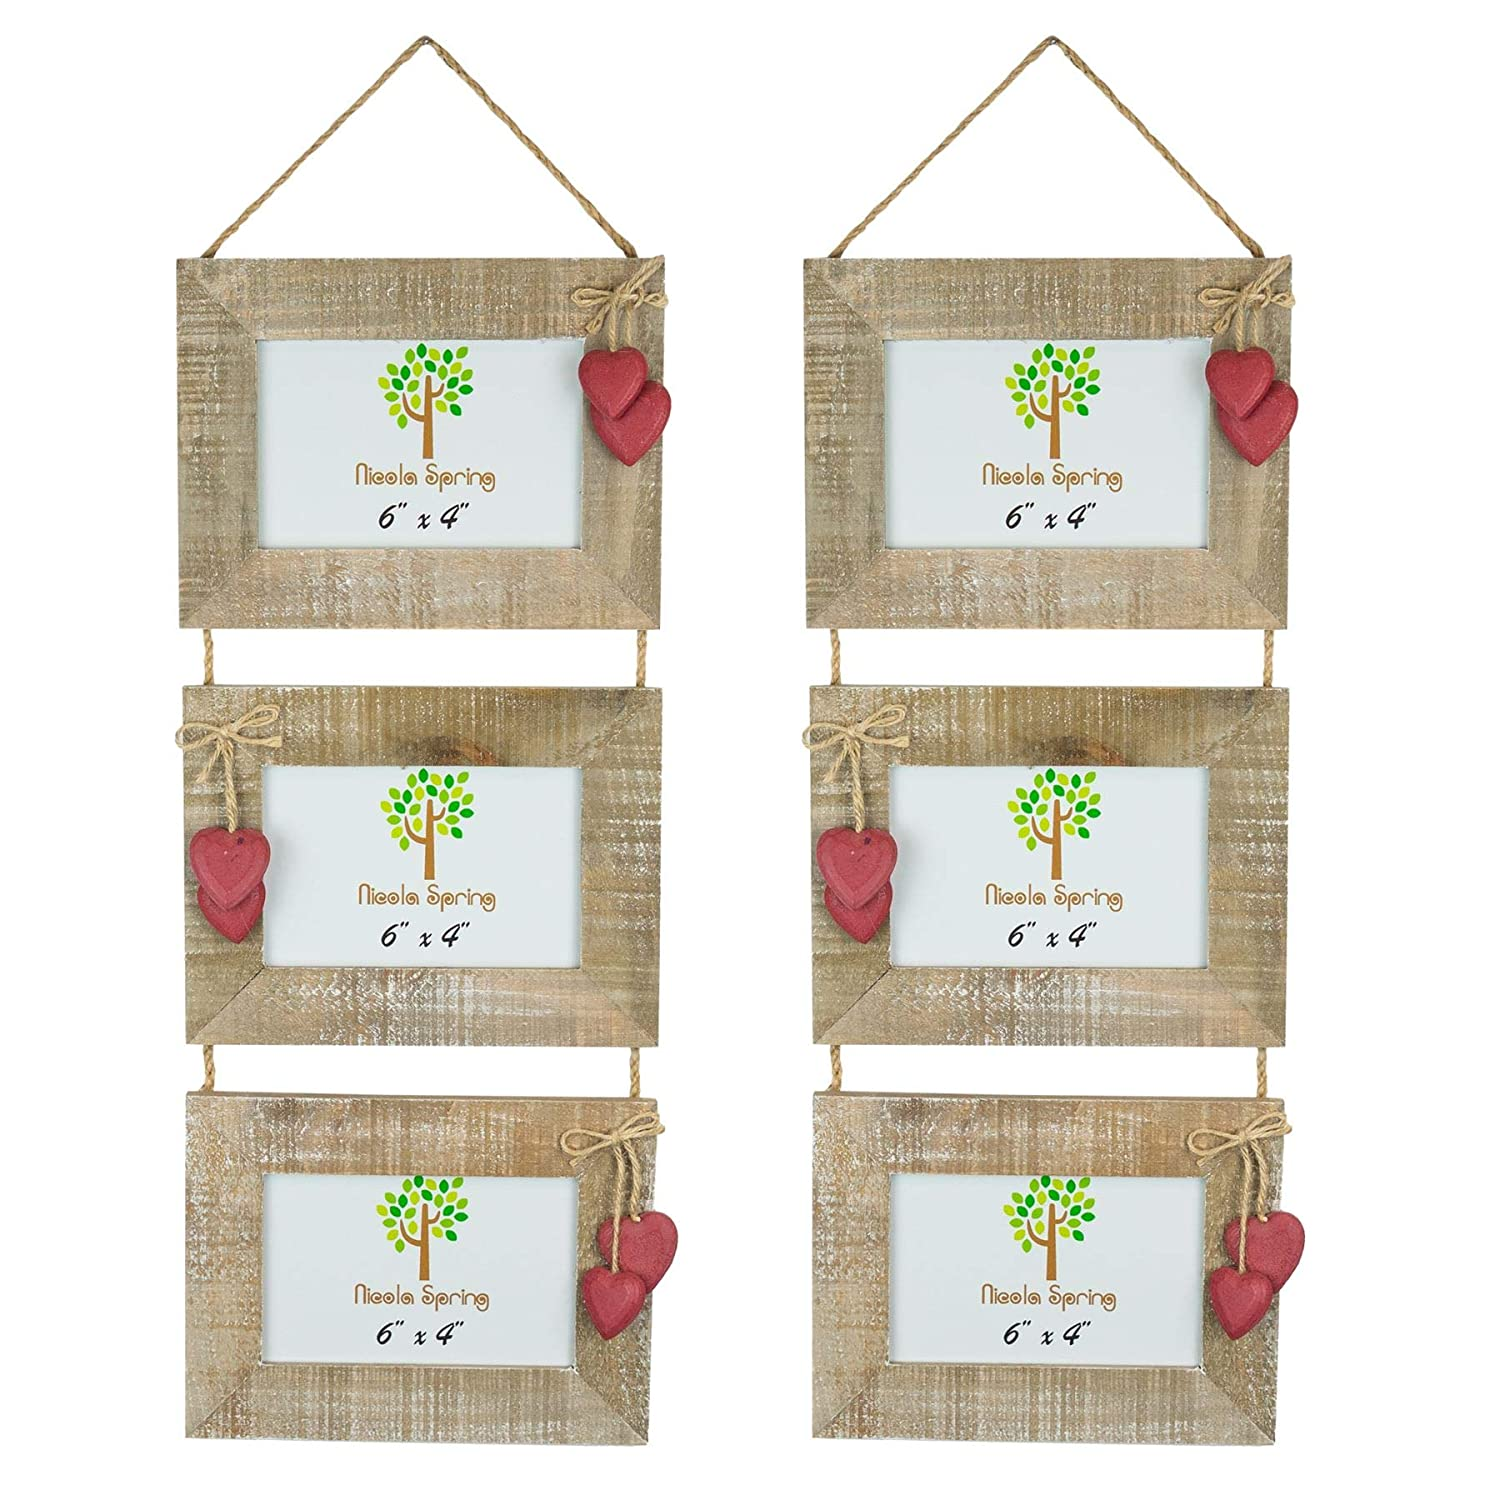 Nicola Spring Triple Wooden 3 Photo Hanging Picture Frame With Red Hearts 6 x 4 Pack Of 2